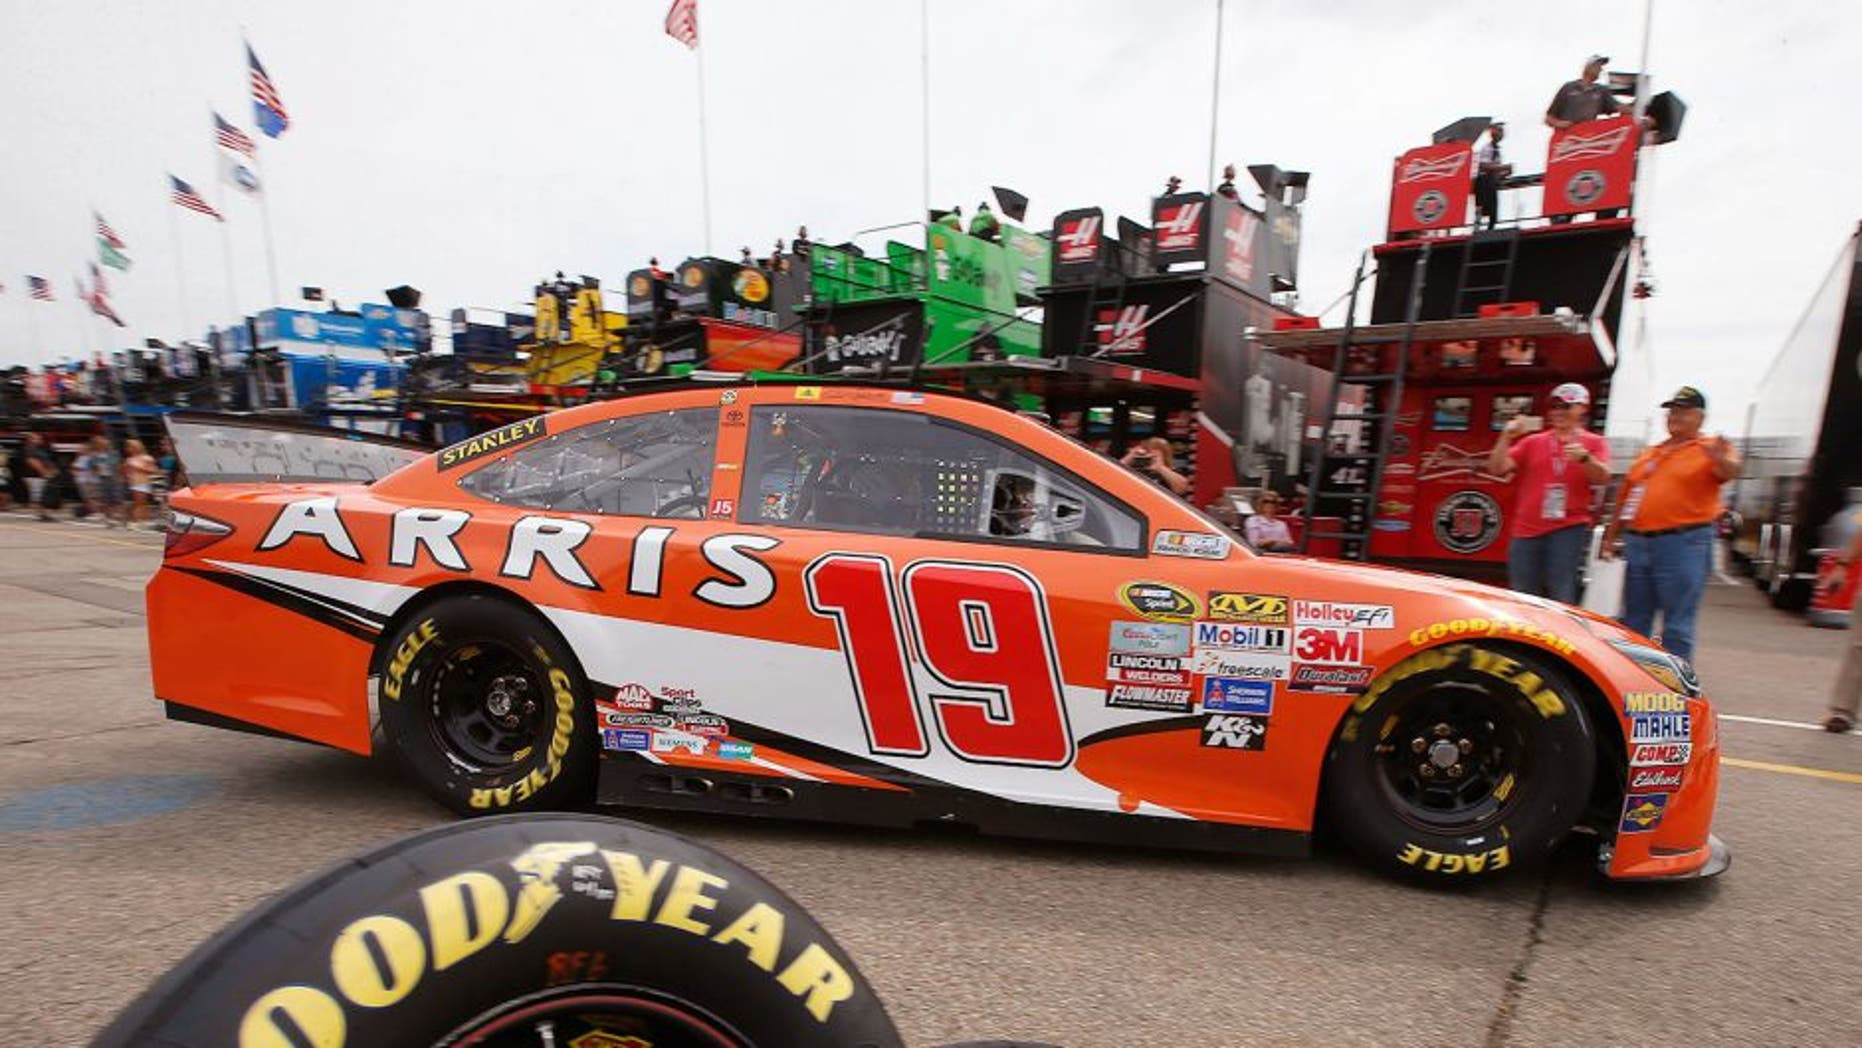 BROOKLYN, MI - AUGUST 14: Carl Edwards, driver of the #19 ARRIS Toyota, drives through the garage area during practice for the NASCAR Sprint Cup Series Pure Michigan 400 at Michigan International Speedway on August 14, 2015 in Brooklyn, Michigan. (Photo by Gregory Shamus/Getty Images)